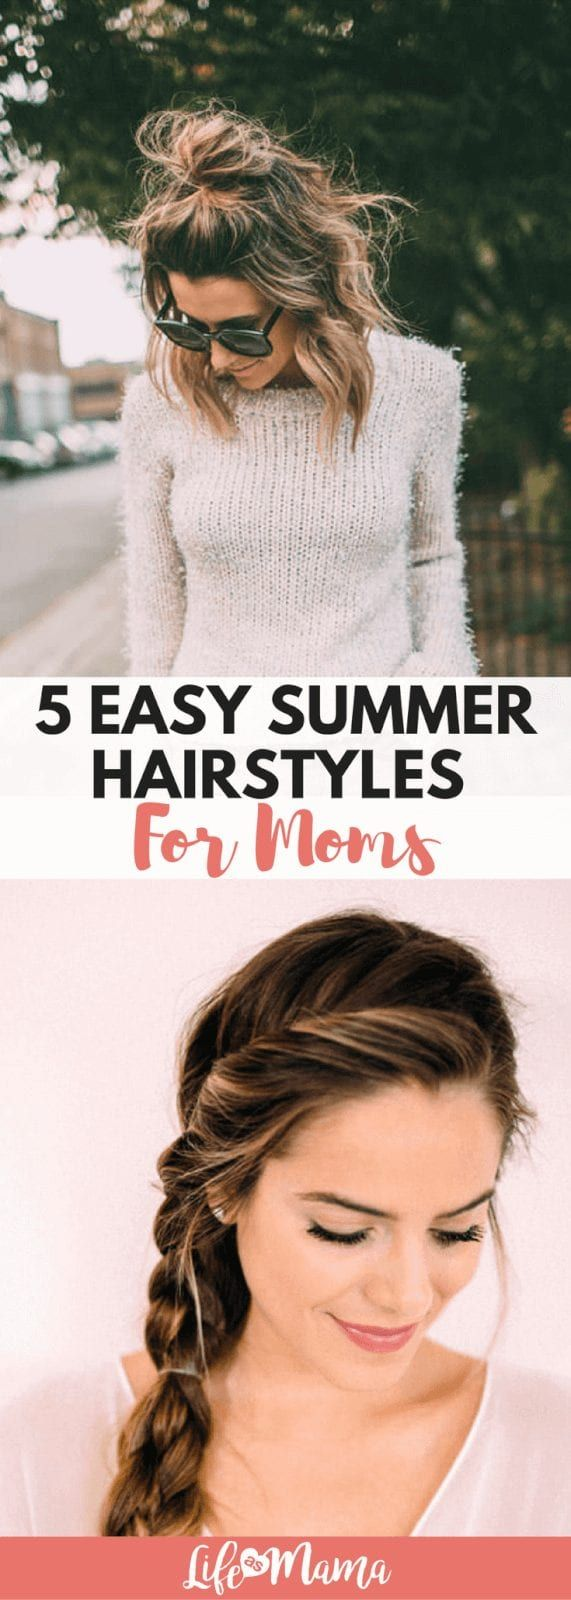 5 Easy Summer Hairstyles For Moms